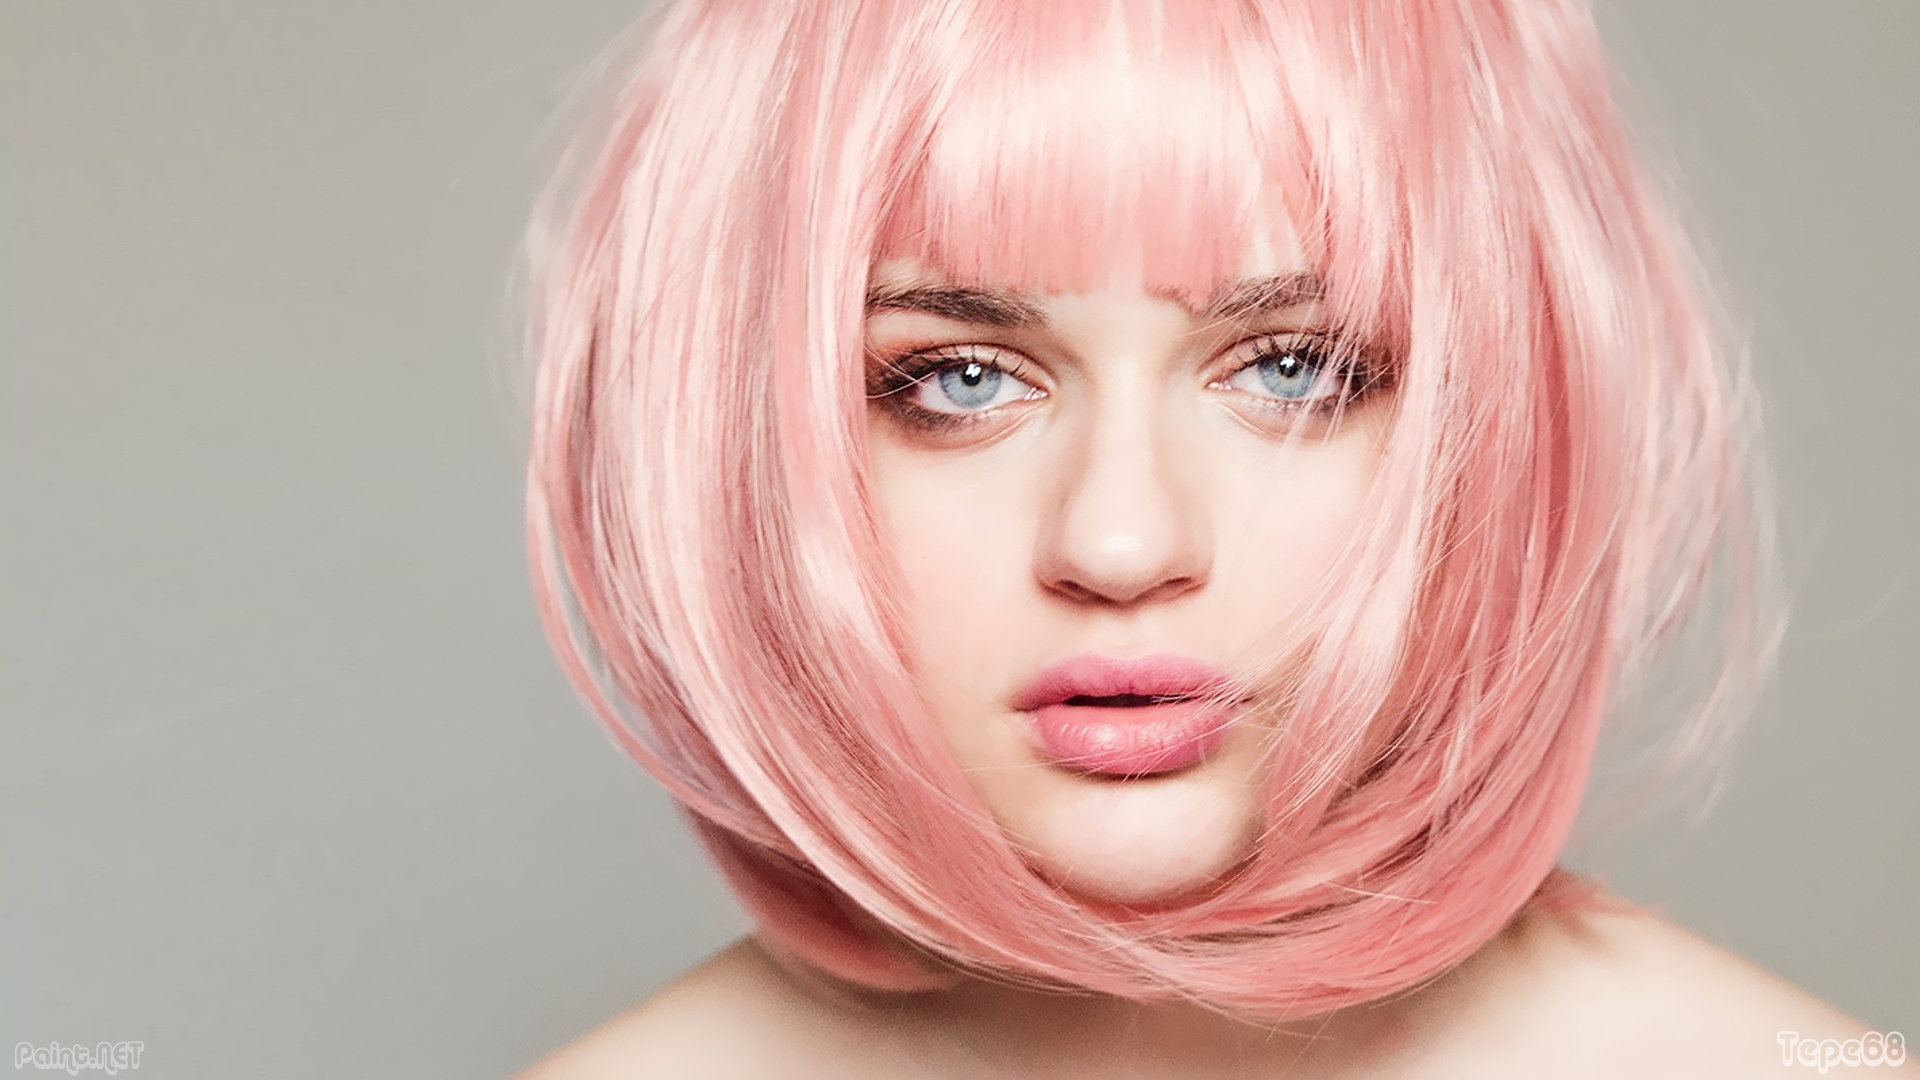 joey king pink hair wallpaper 71661